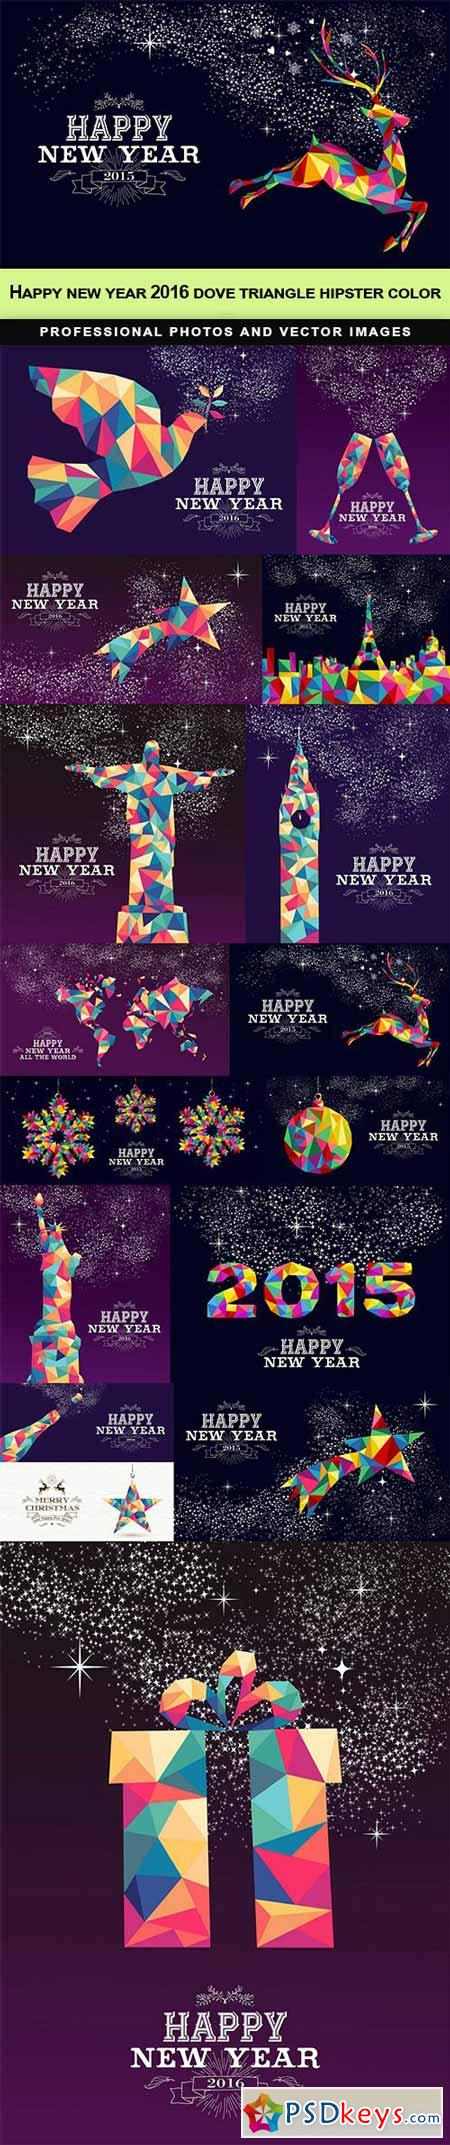 Happy new year 2016 dove triangle hipster color - 15 EPS